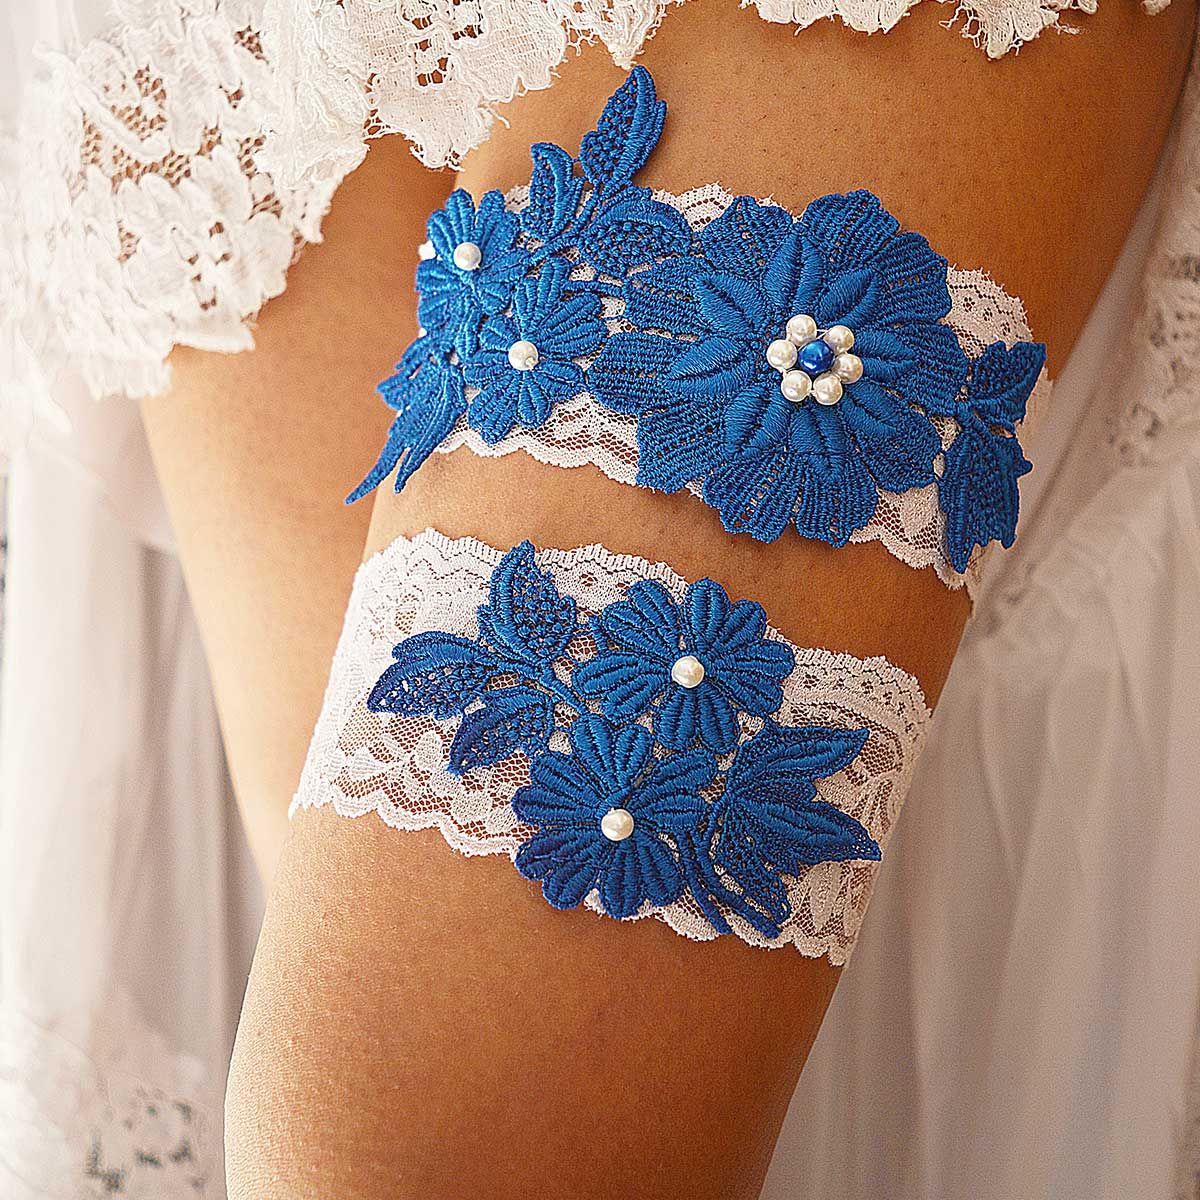 White Bridal Garter With Pearls & Royal Blue Flower Applique - Wedding Garter - SuzannaM Designs